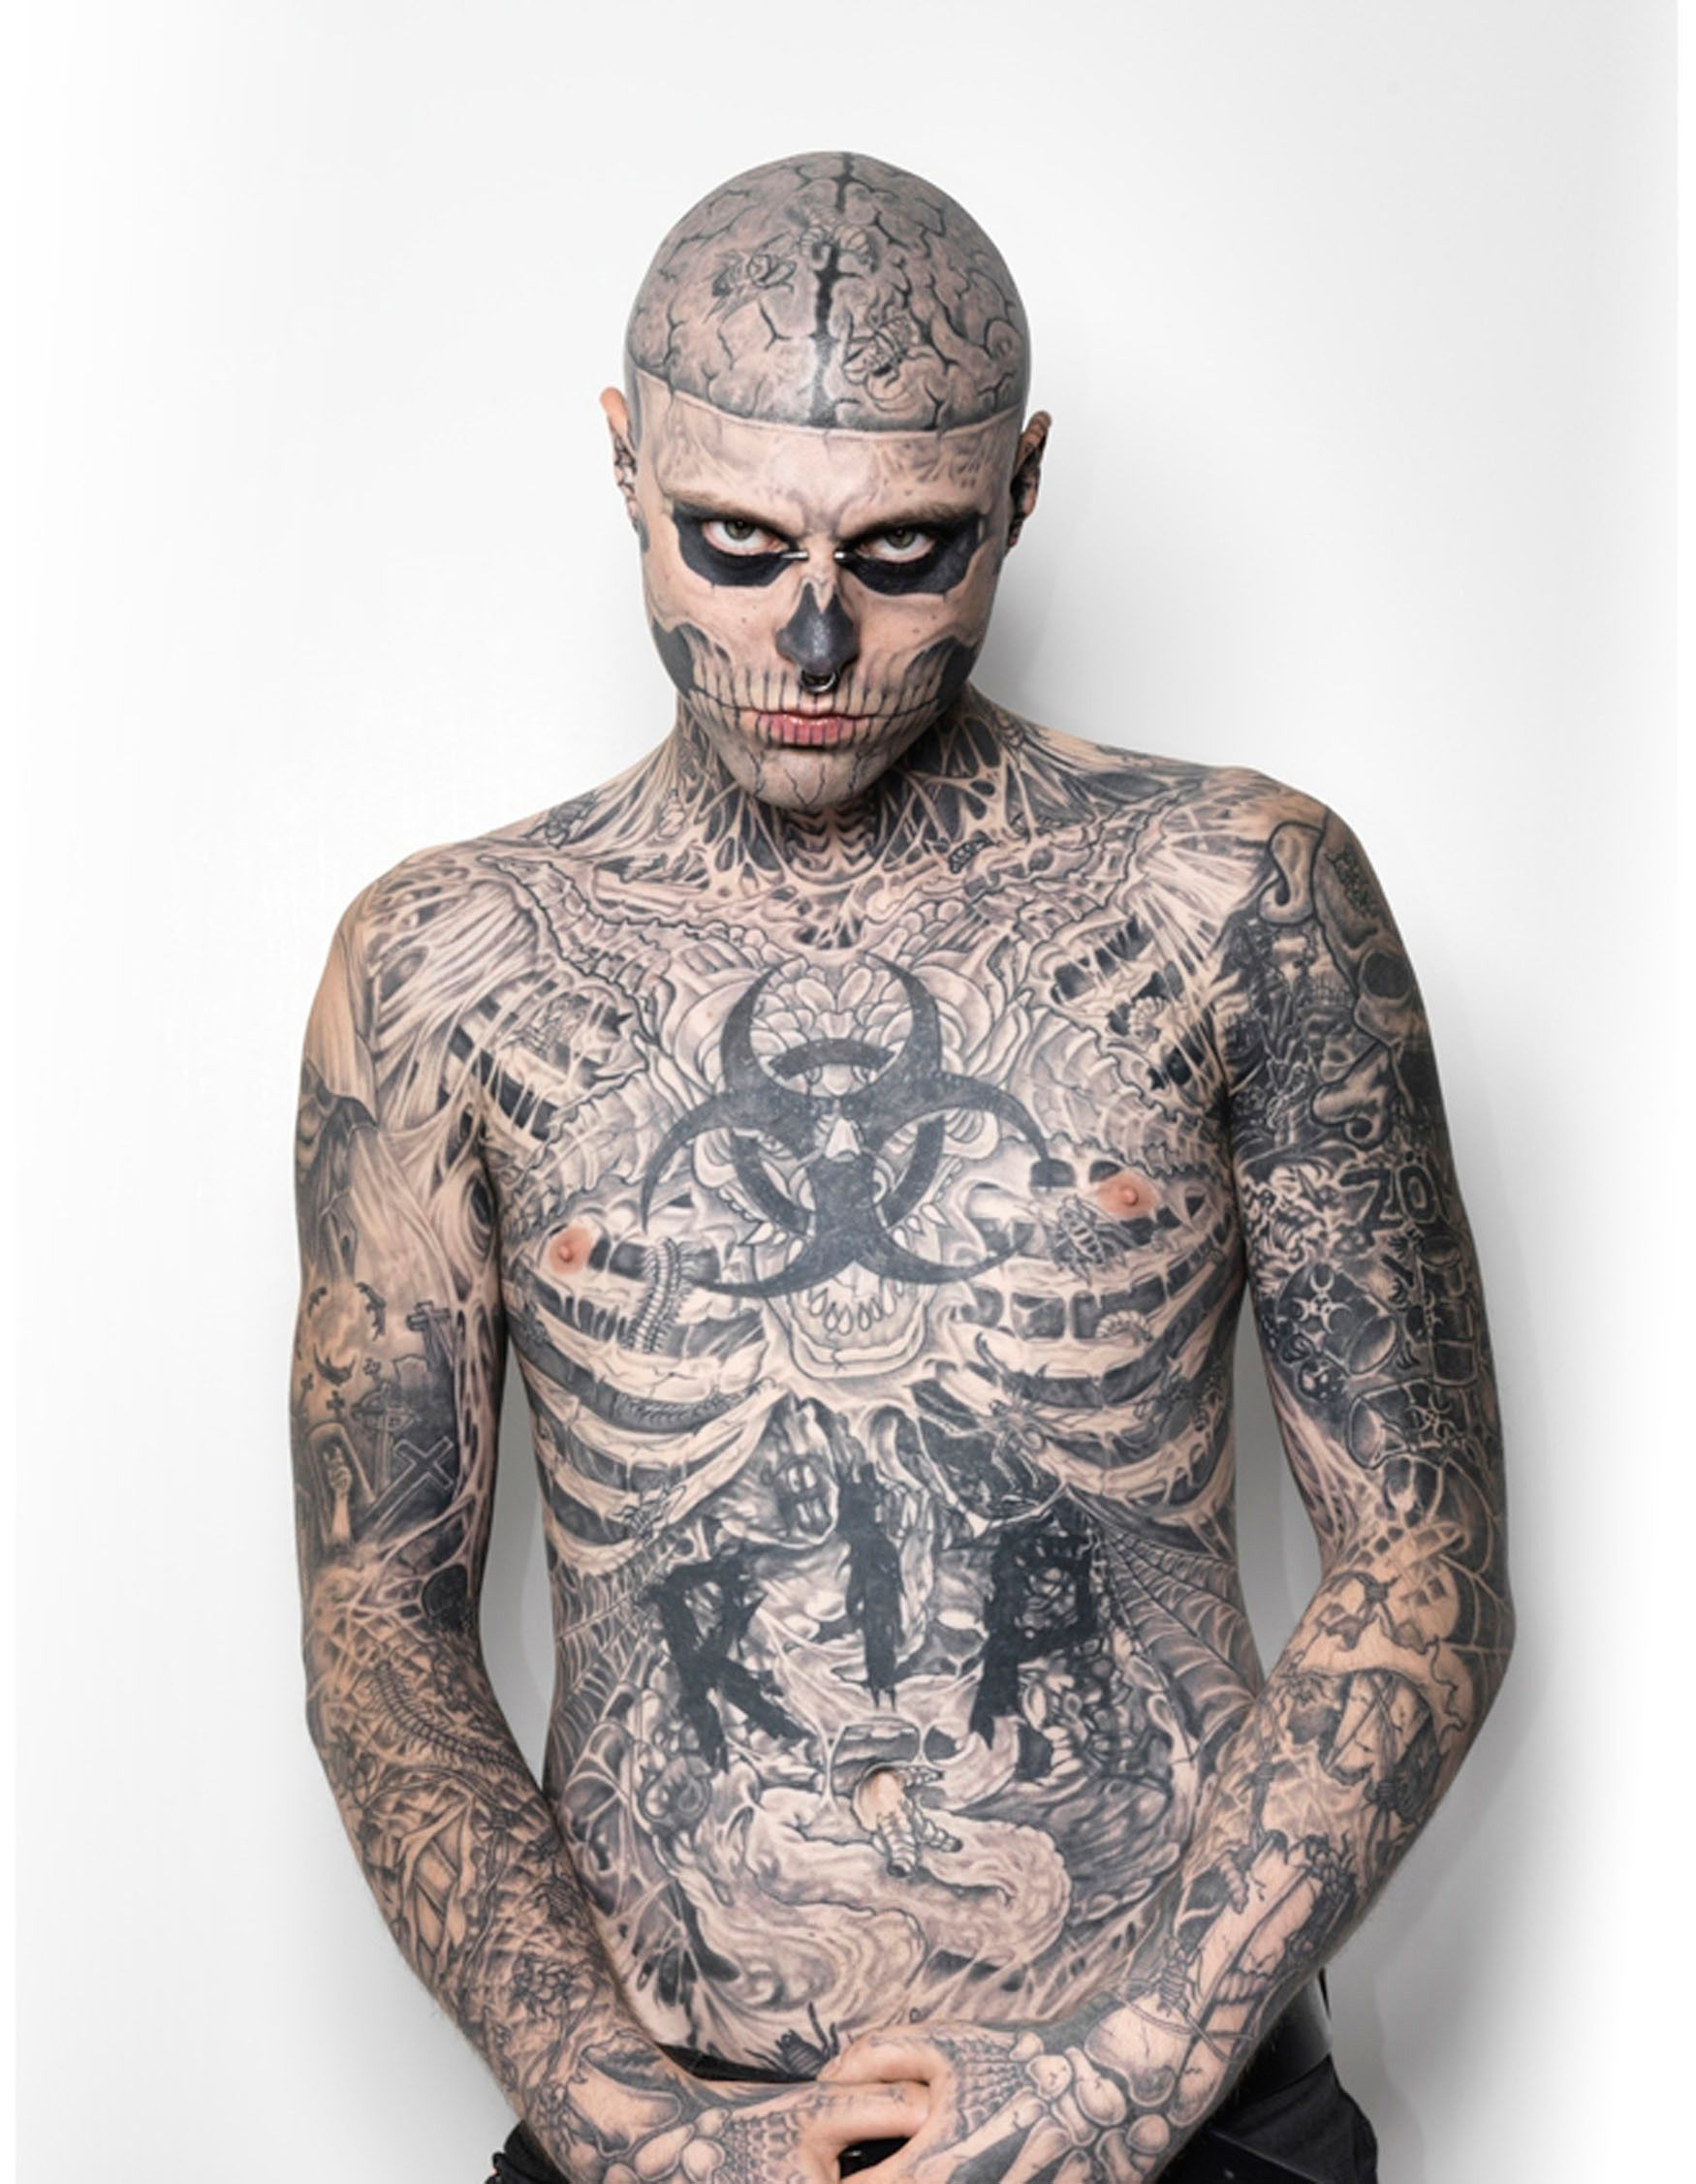 Meet Zombie Boy the closest thing to the walking dead